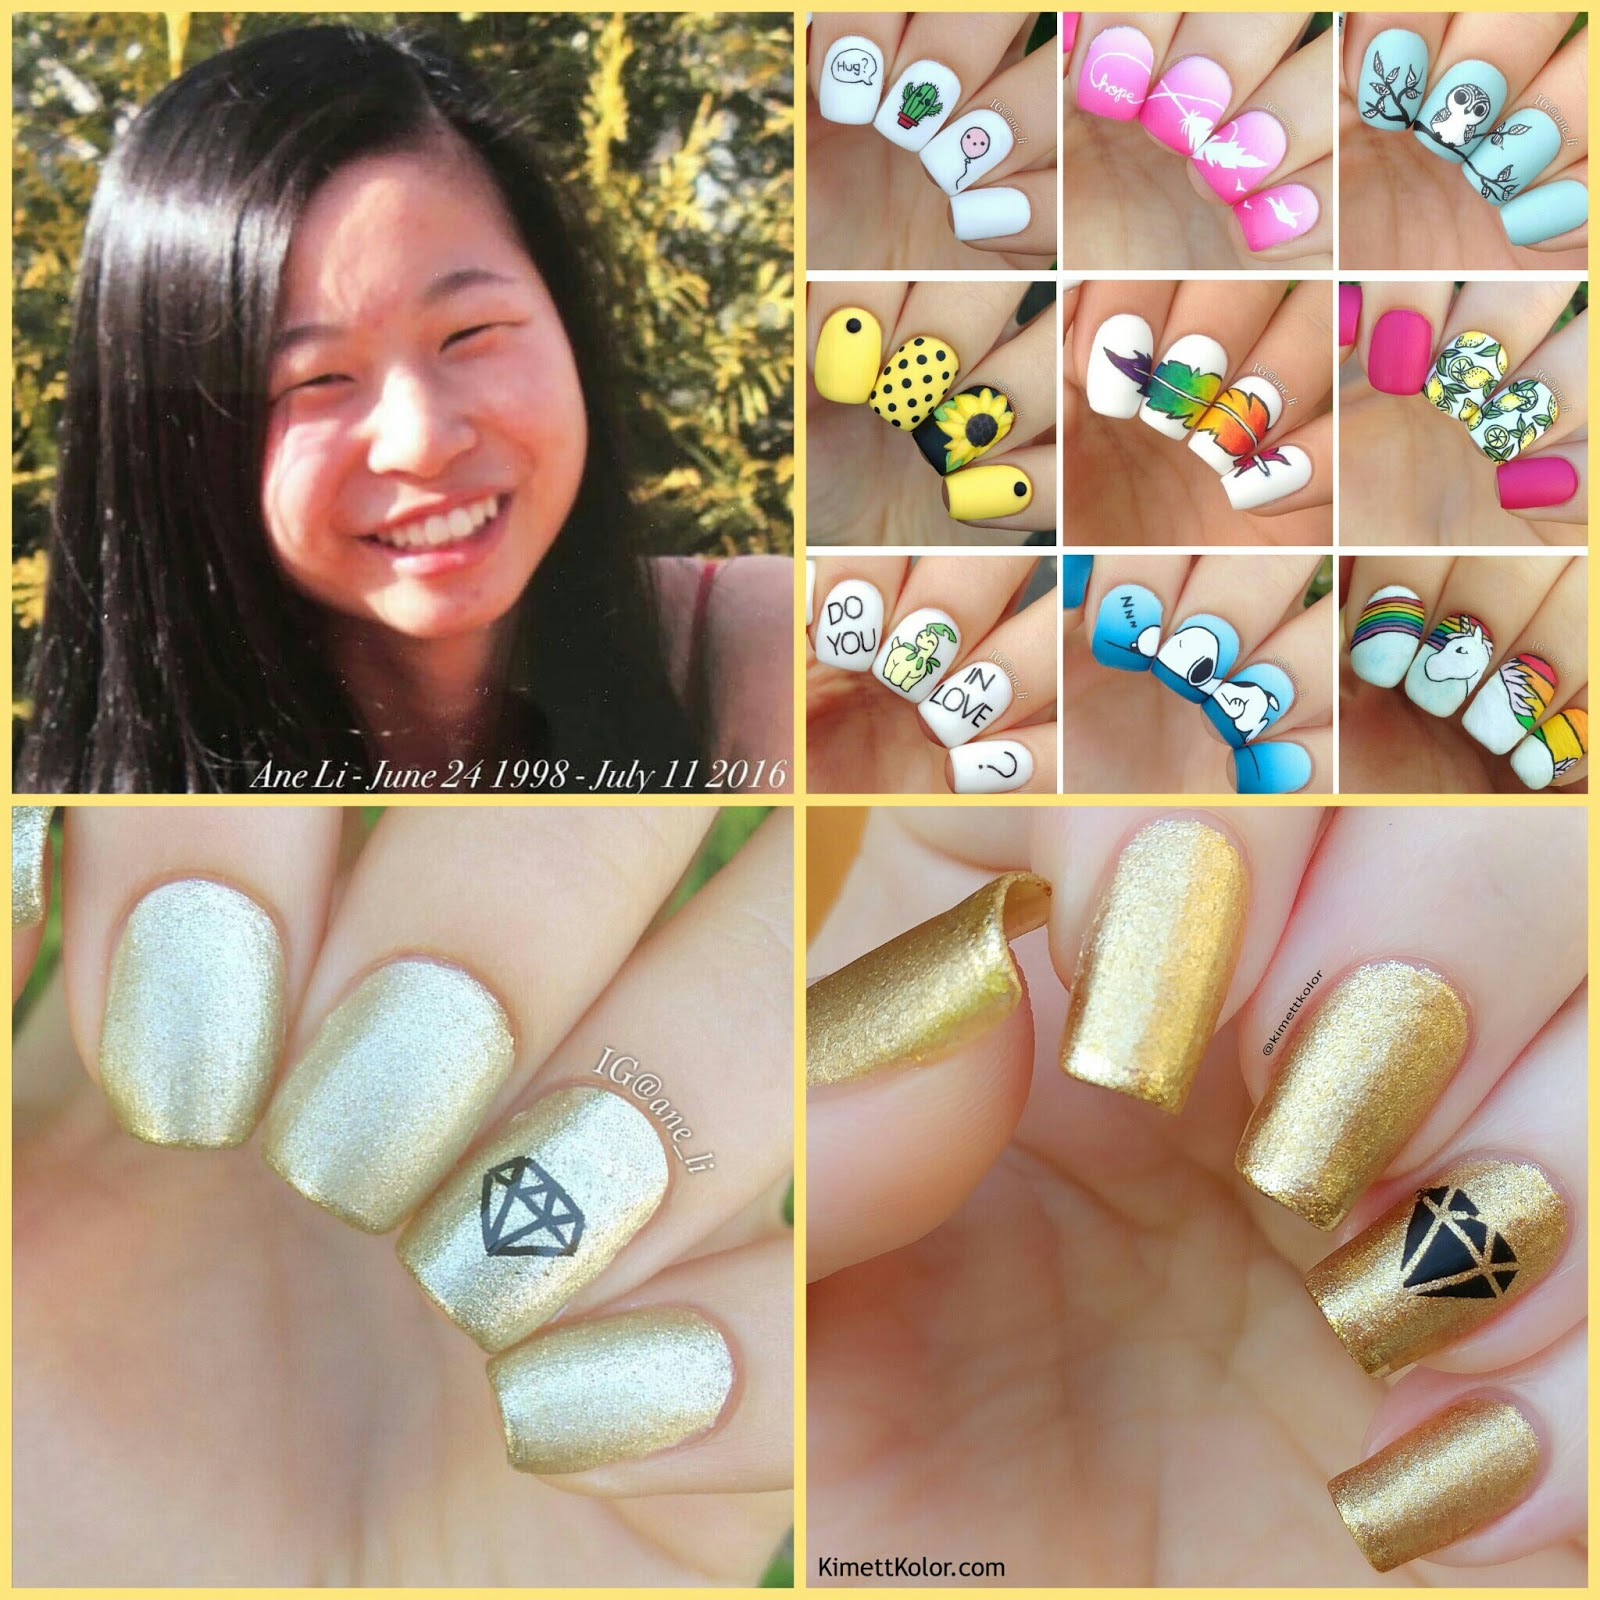 KimettKolor Nail Art - Ane Li Recreation